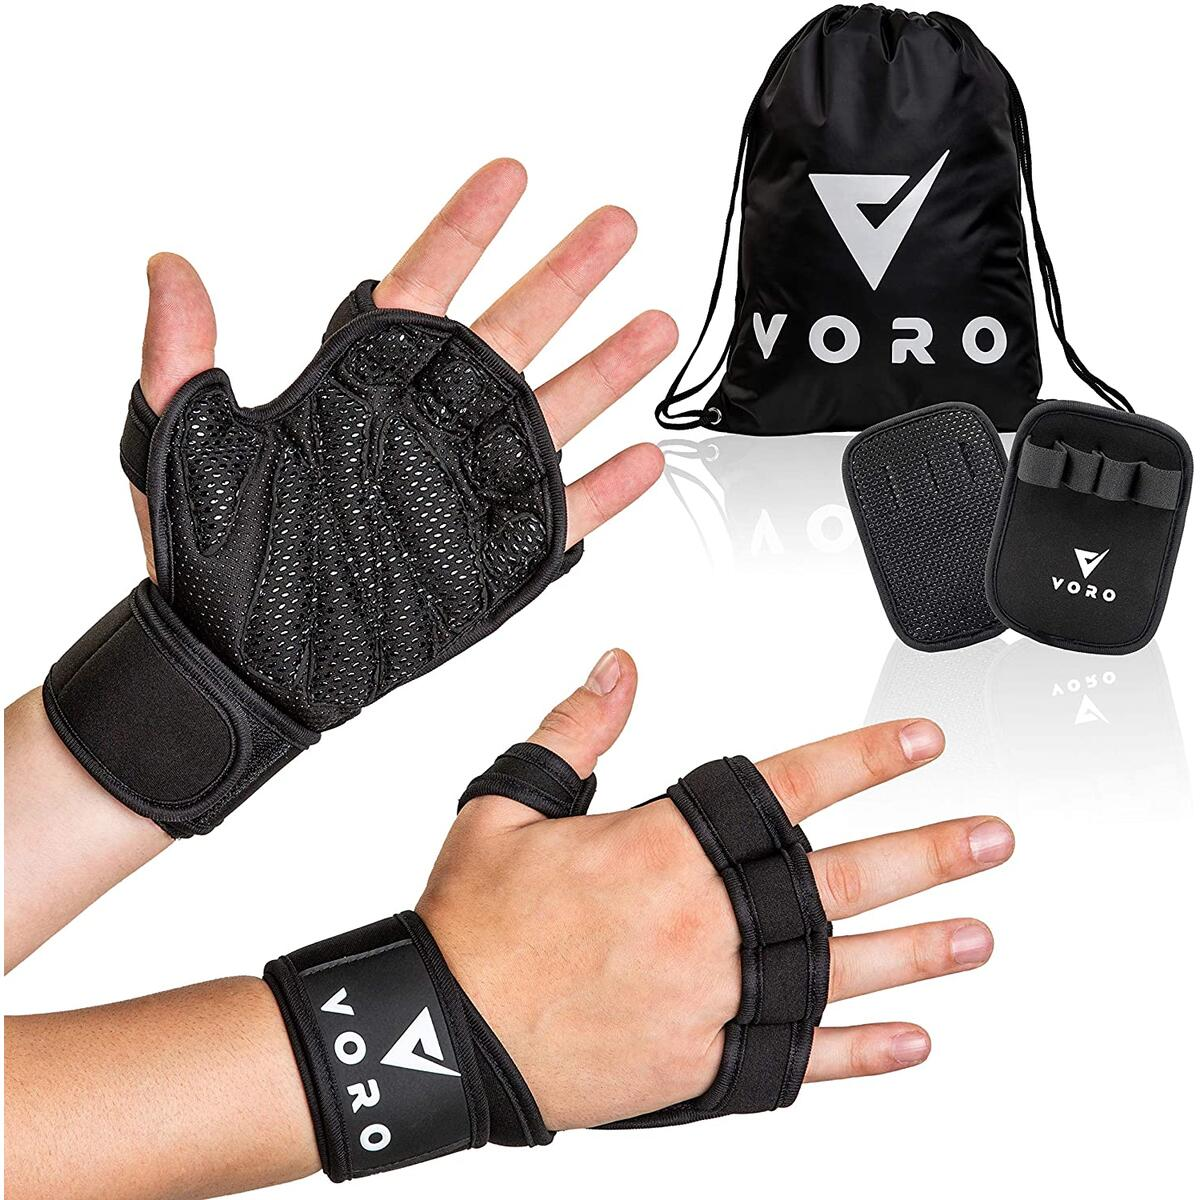 Voro Workout Gloves Ventilated Weight Lifting Gloves with Wrist Wraps, Flexible Full Palm Protection for Weightlifting, Powerlifting, Crossfit WODs, Cross Training Exercise, Men & Women